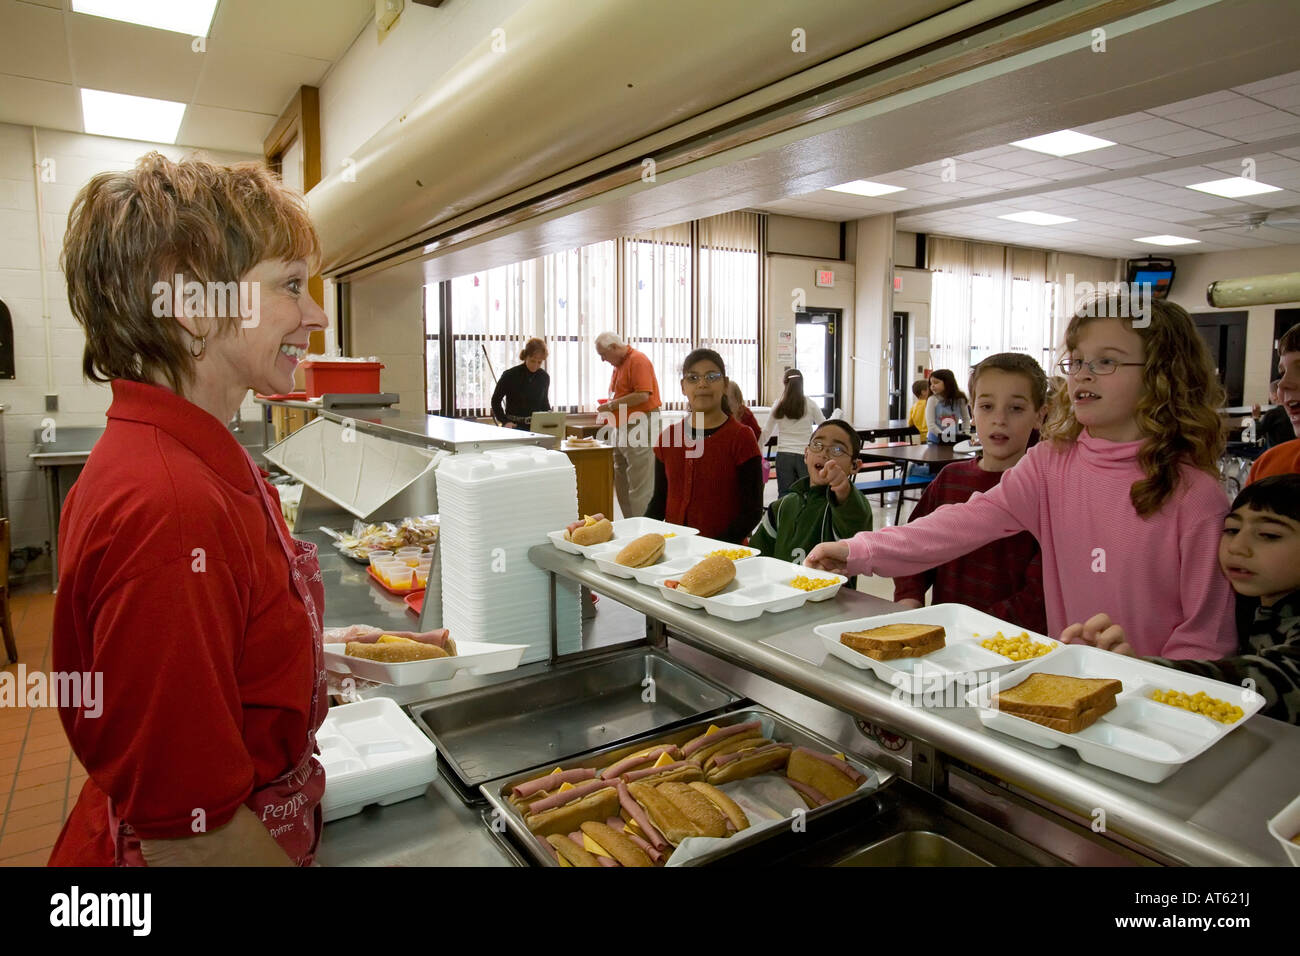 elementary school cafeteria. Dearborn Michigan Debra Sabaugh In The Cafeteria At Lindbergh Elementary School - Stock Image H